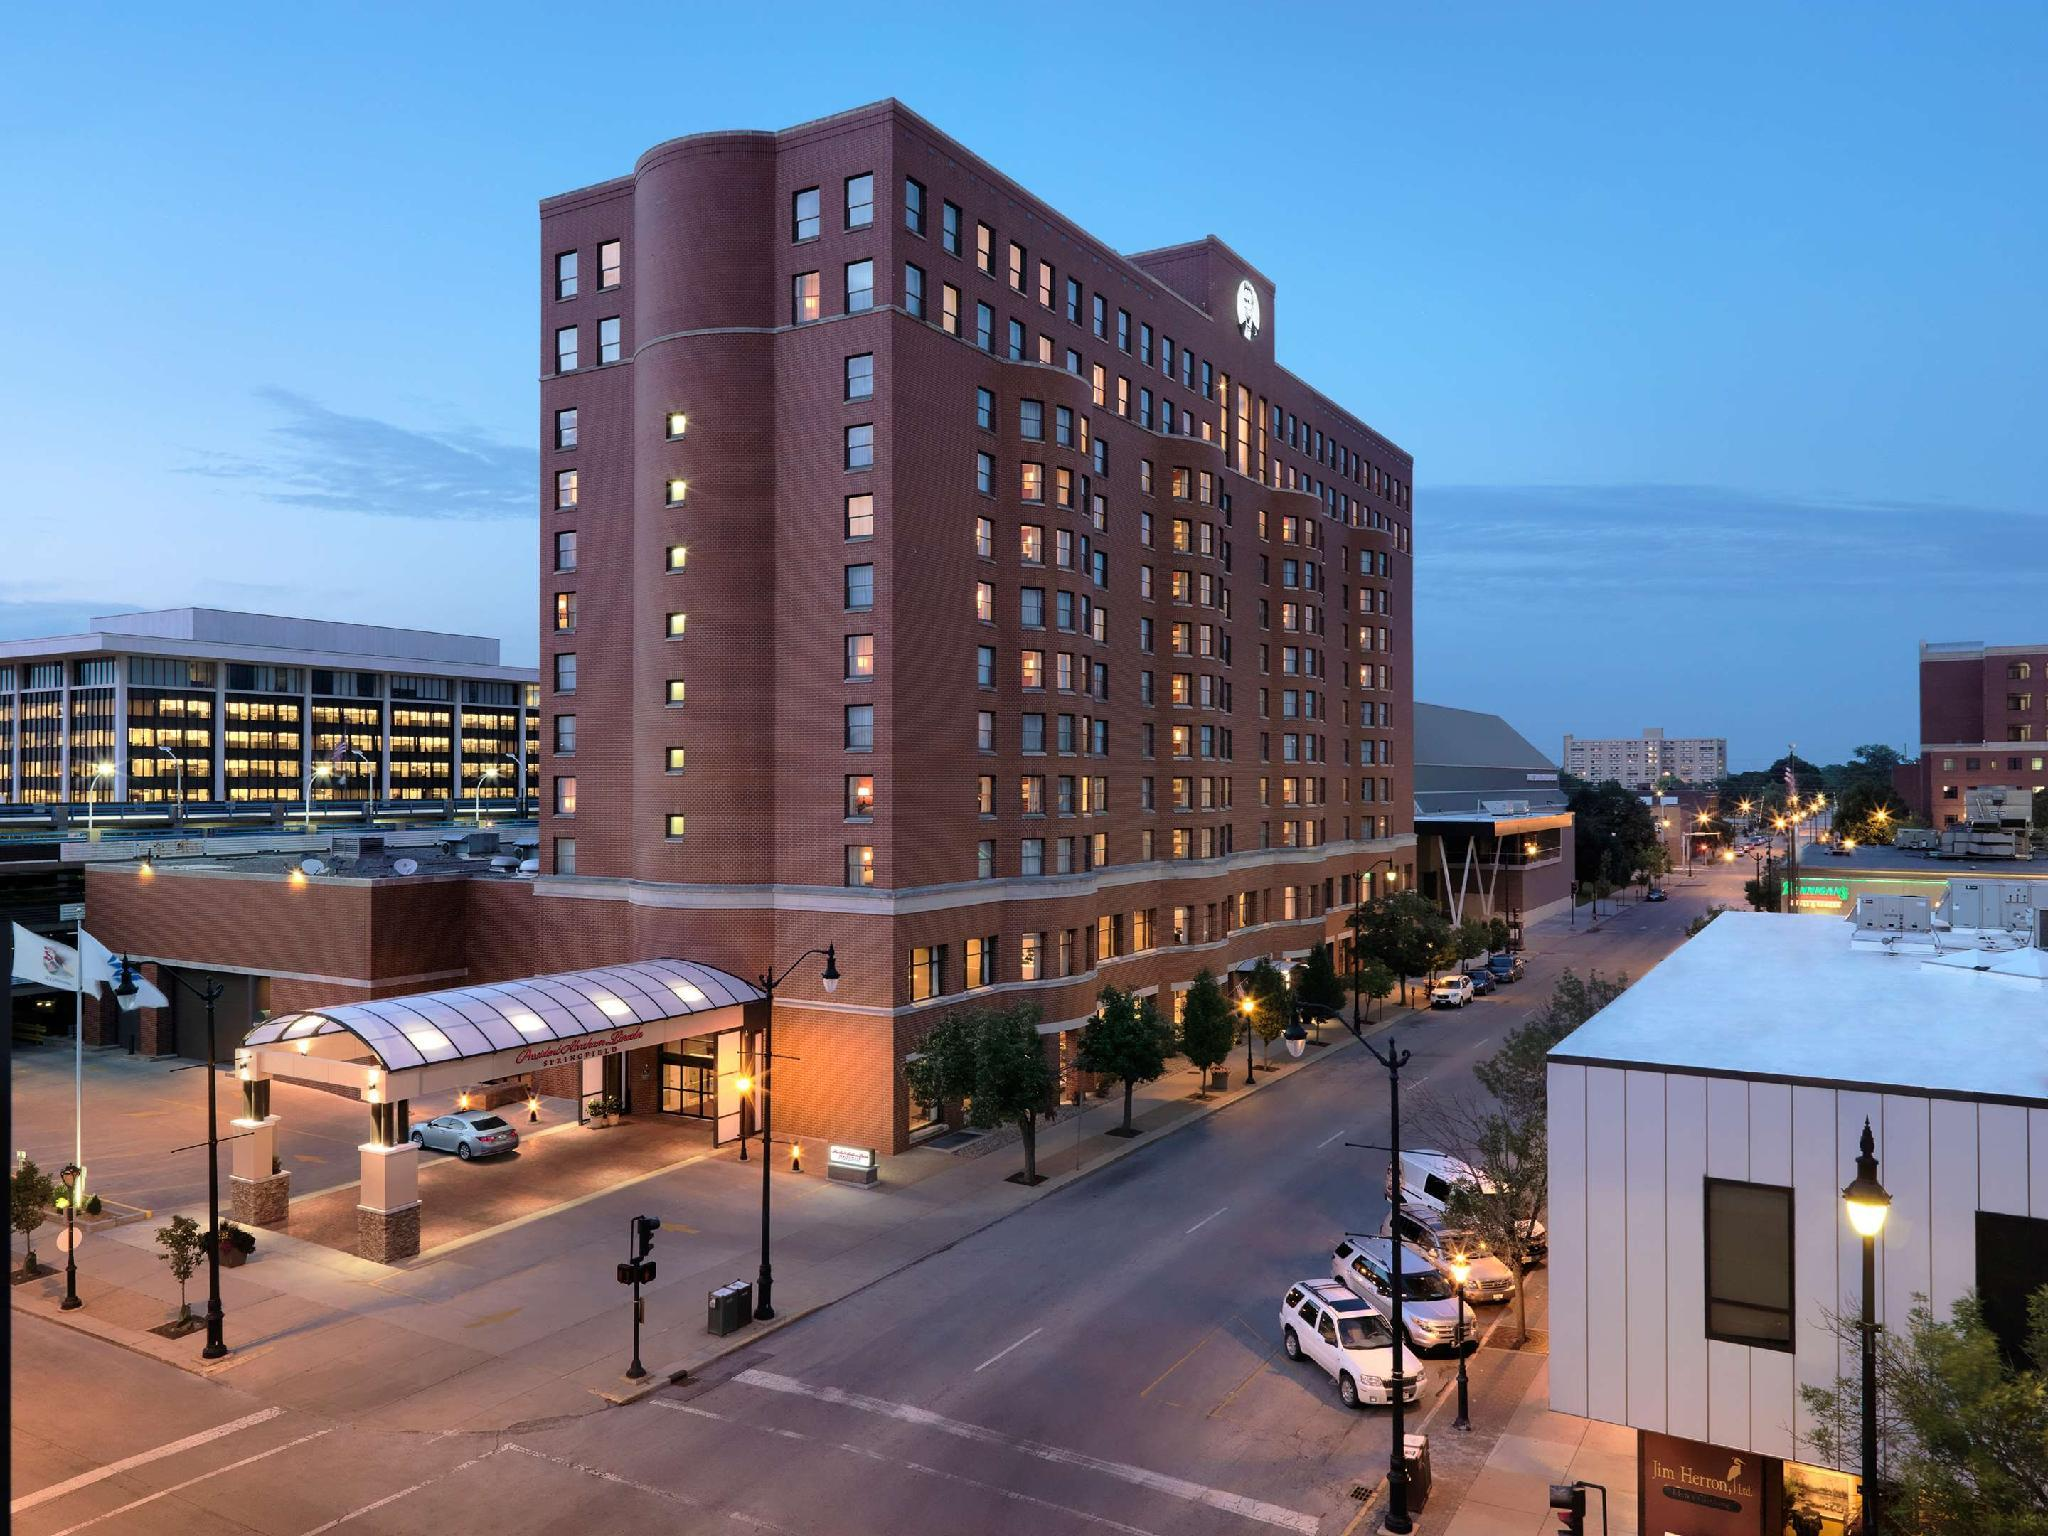 Doubletree By Hilton Hotel President Abraham Lincoln Springfield